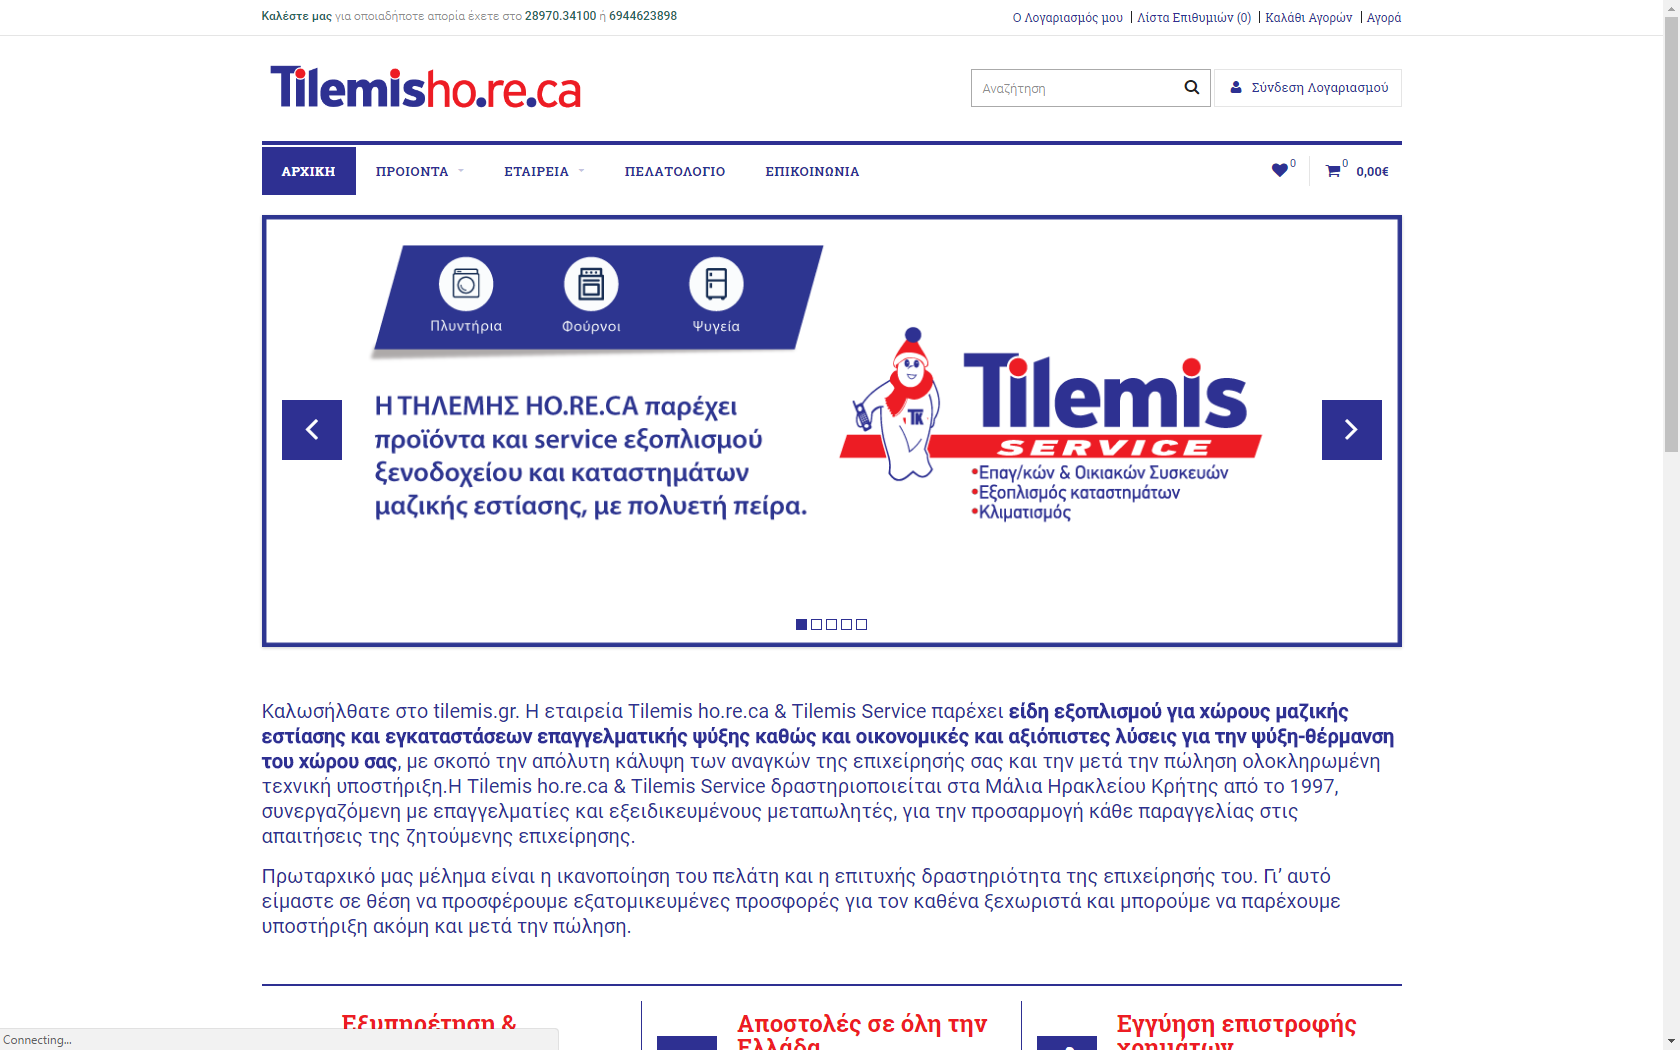 https://jupiweb.com/assets/uploads/files/thumbs/thumb_79c09-tilemis.png